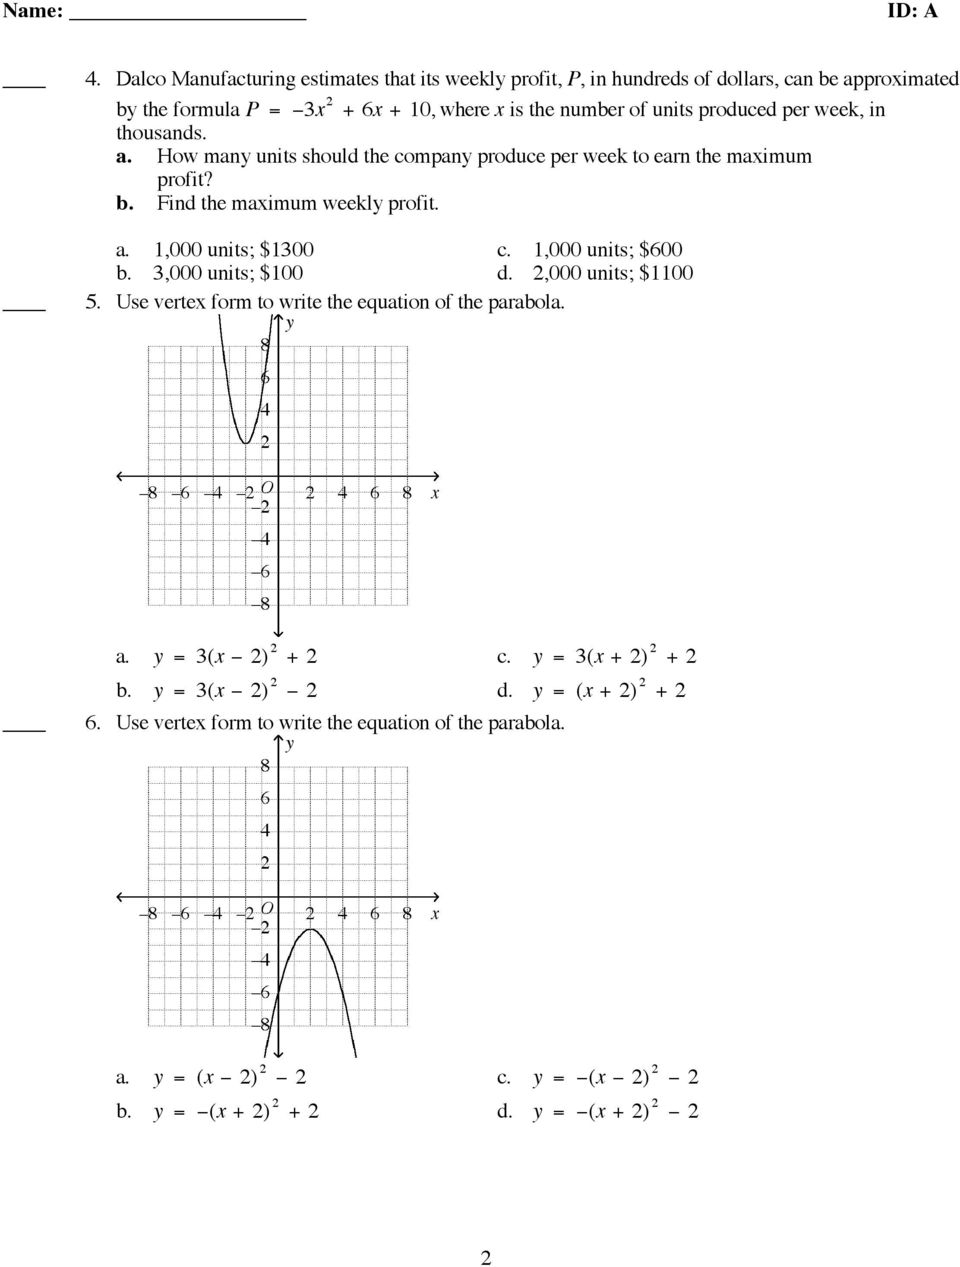 Algebra 2 5.1 Worksheet Answers | Algebra Worksheets Free ...